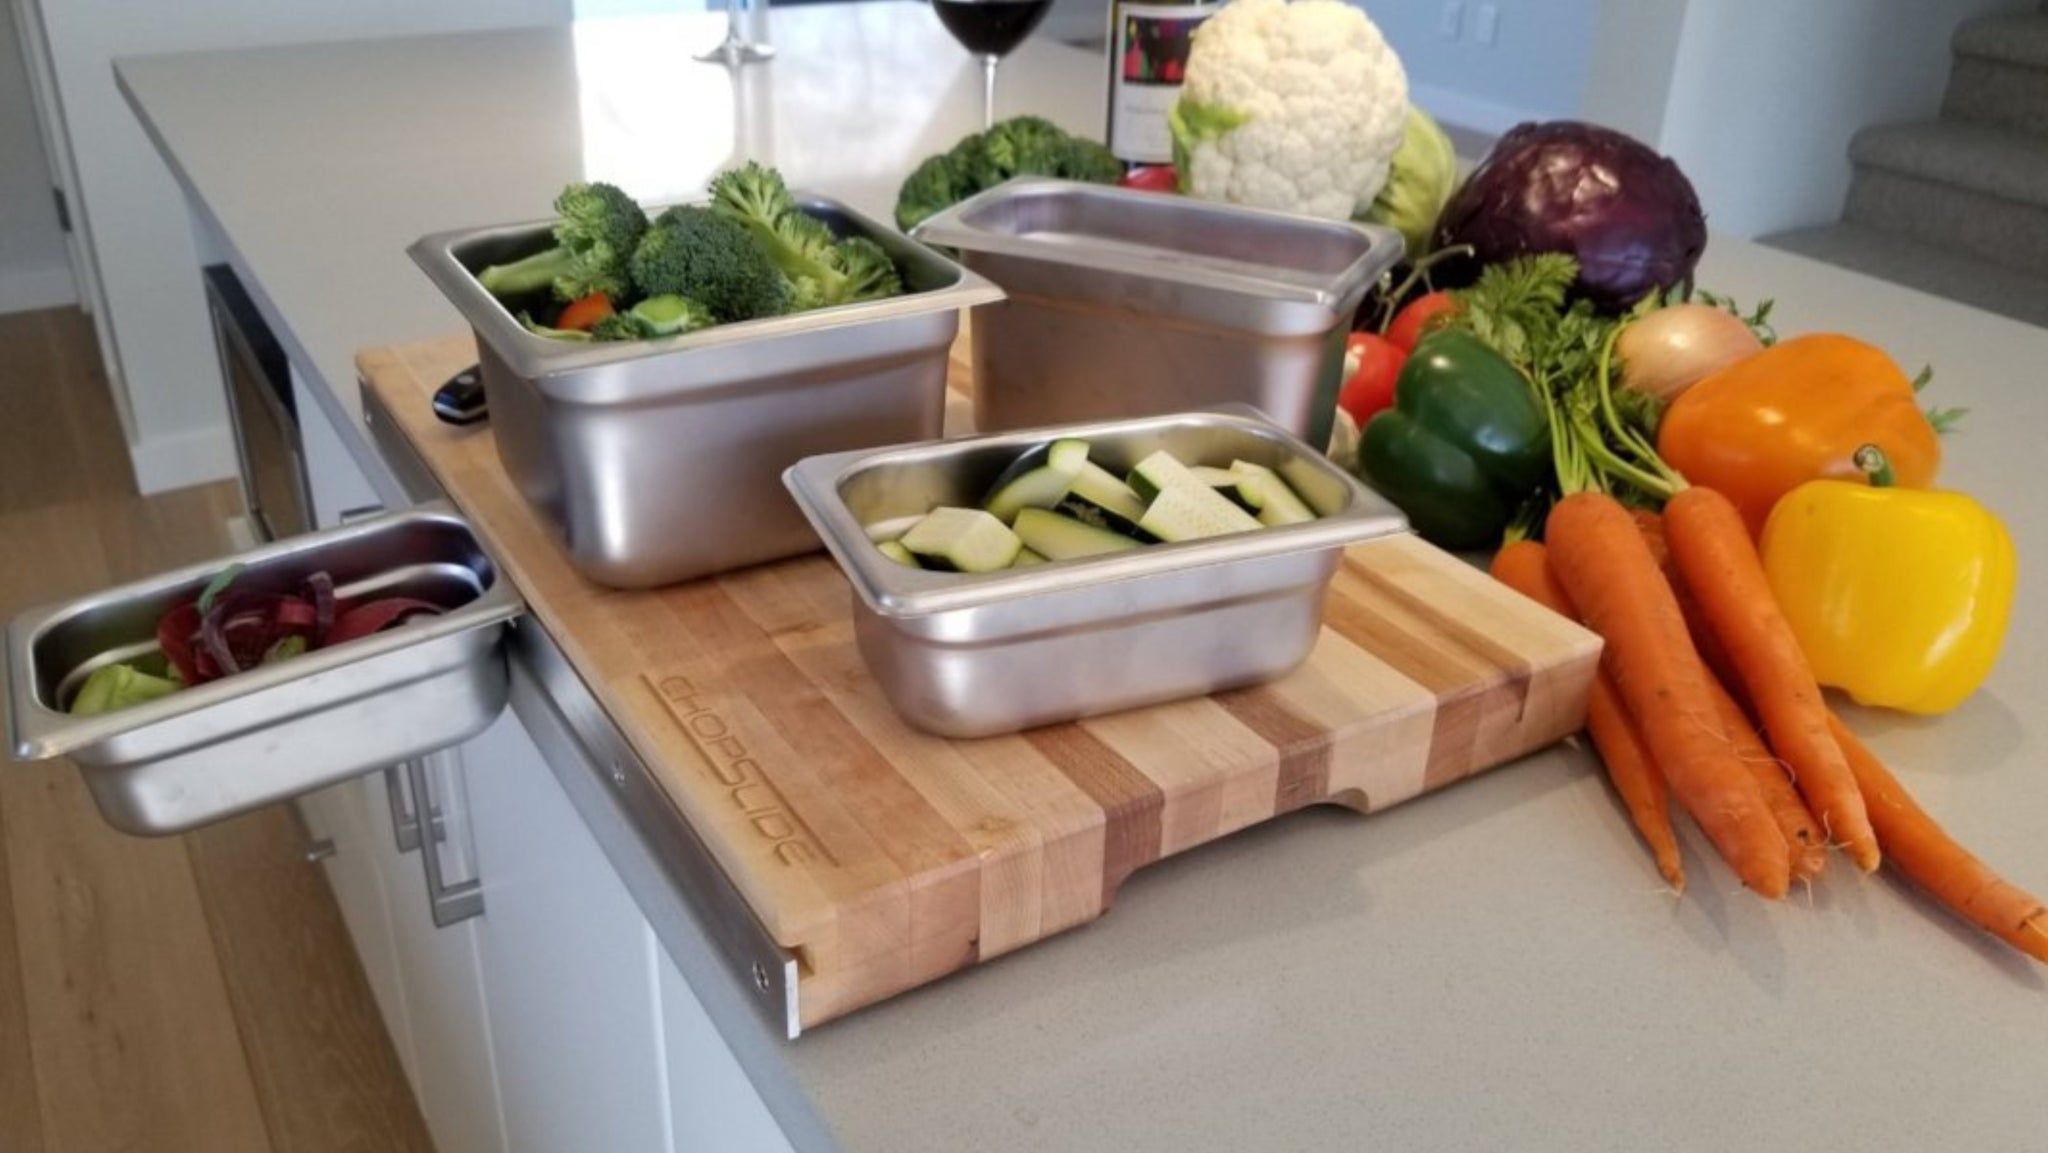 ... ChopSlide Cutting Board With Stainless Steel Containers ...